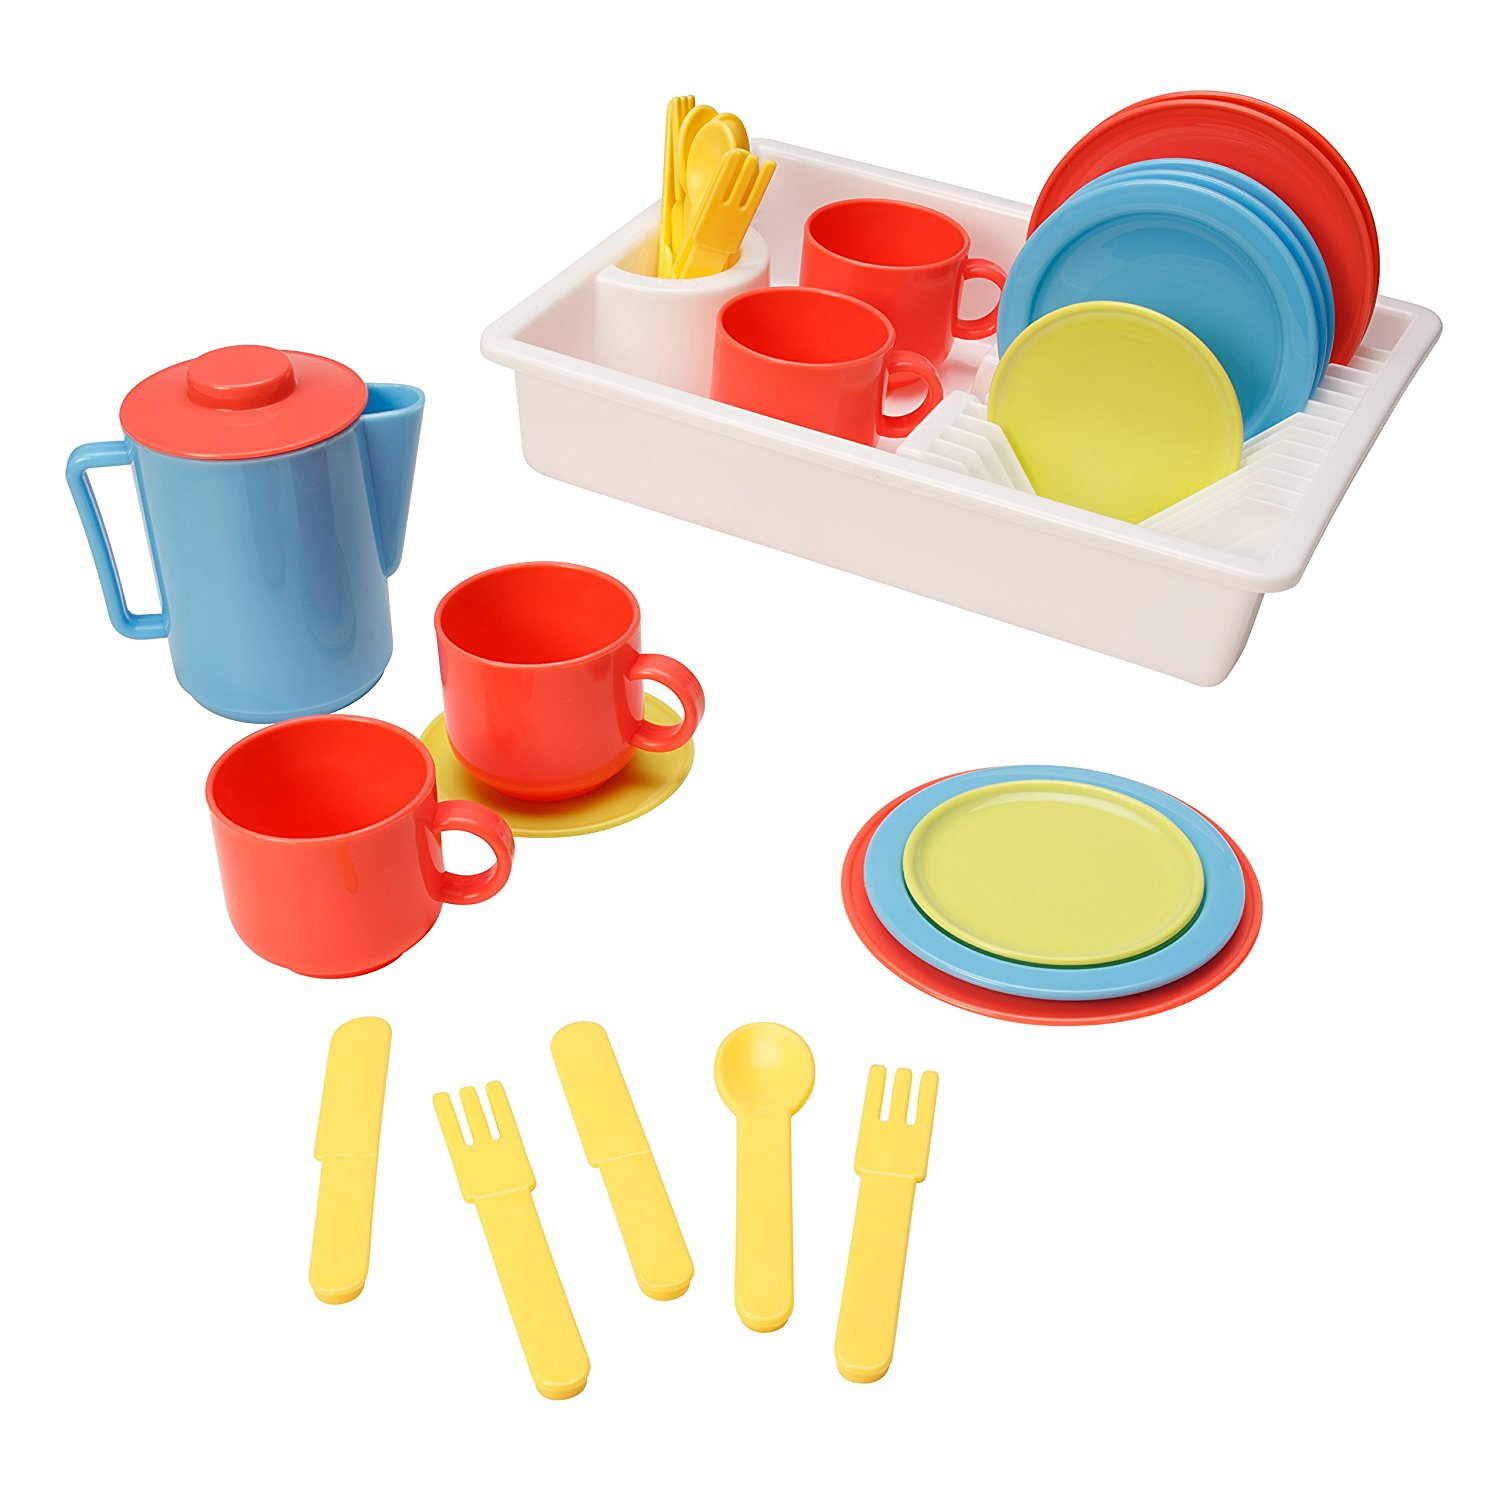 Amazon.com: Playkidz: Super Durable 31 Piece Kids Play Dishes.